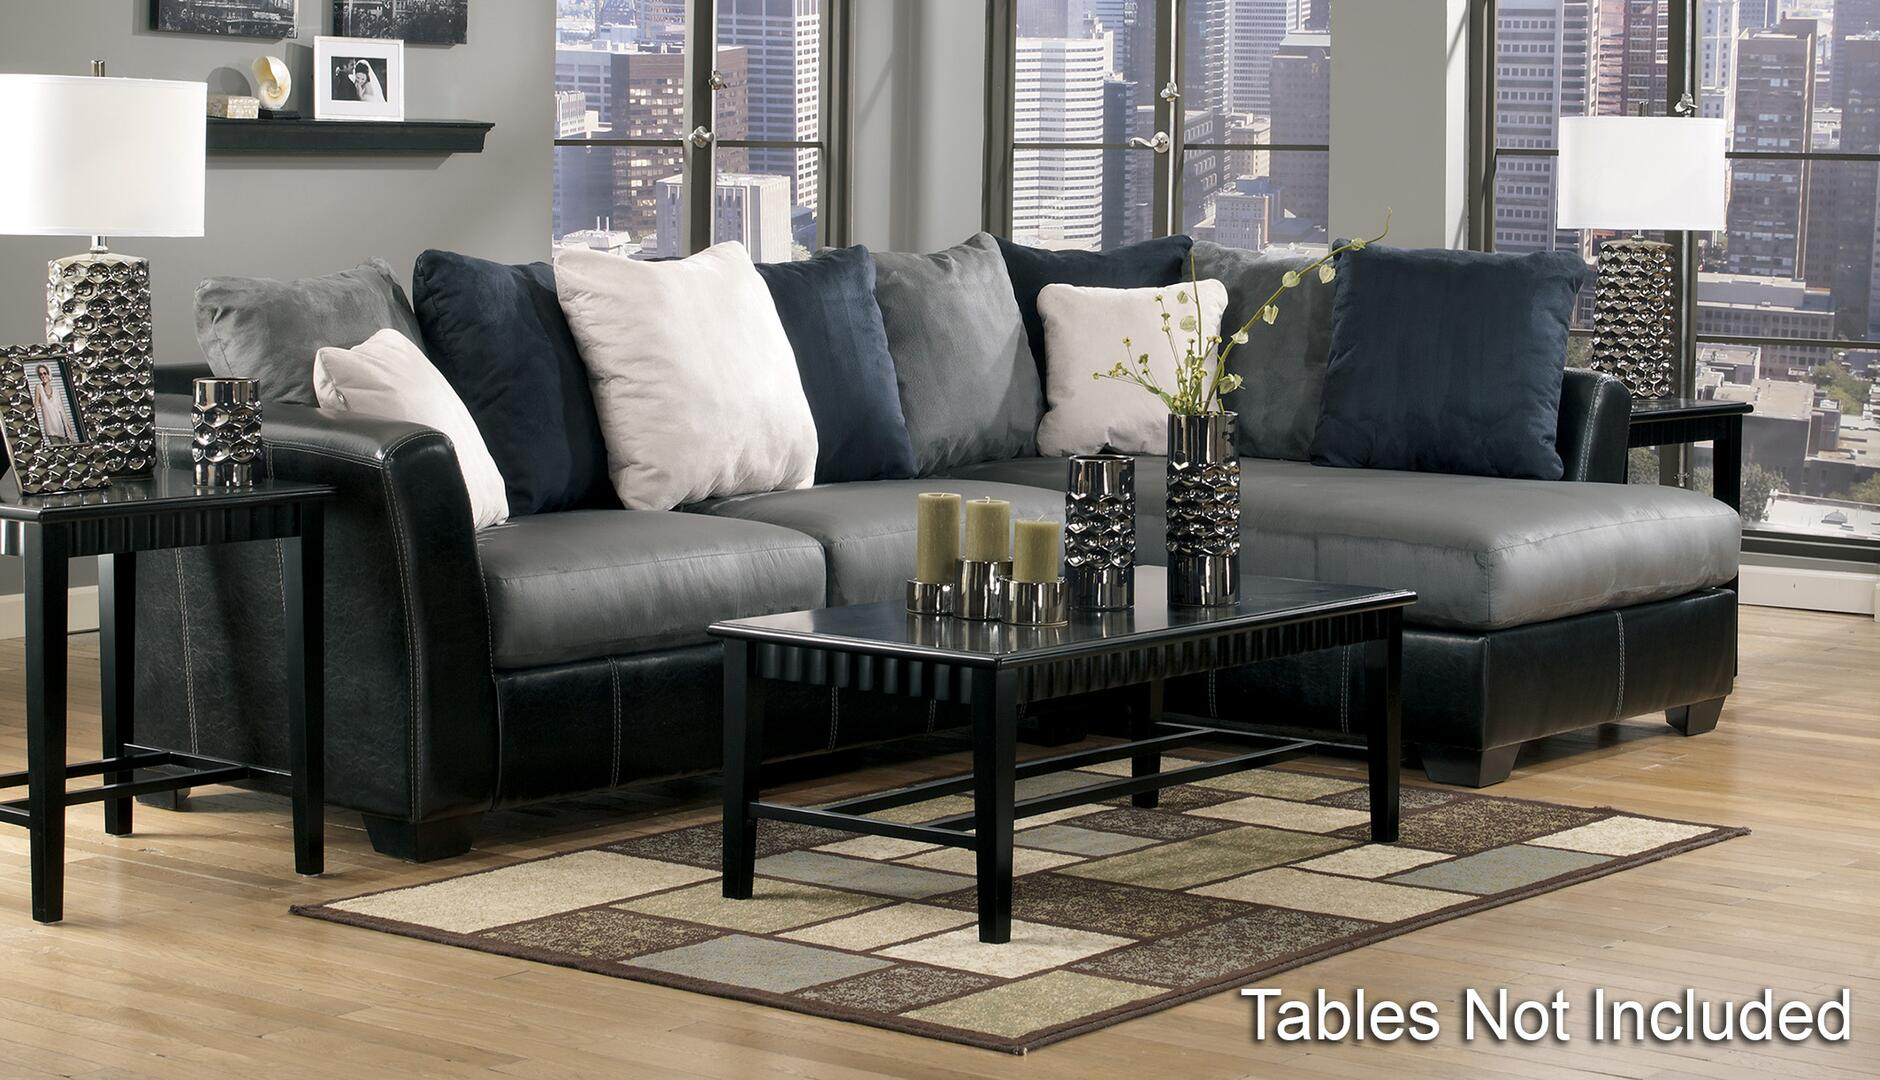 Benchcraft 142006617set2 masoli living room sets for Living room furniture 0 finance